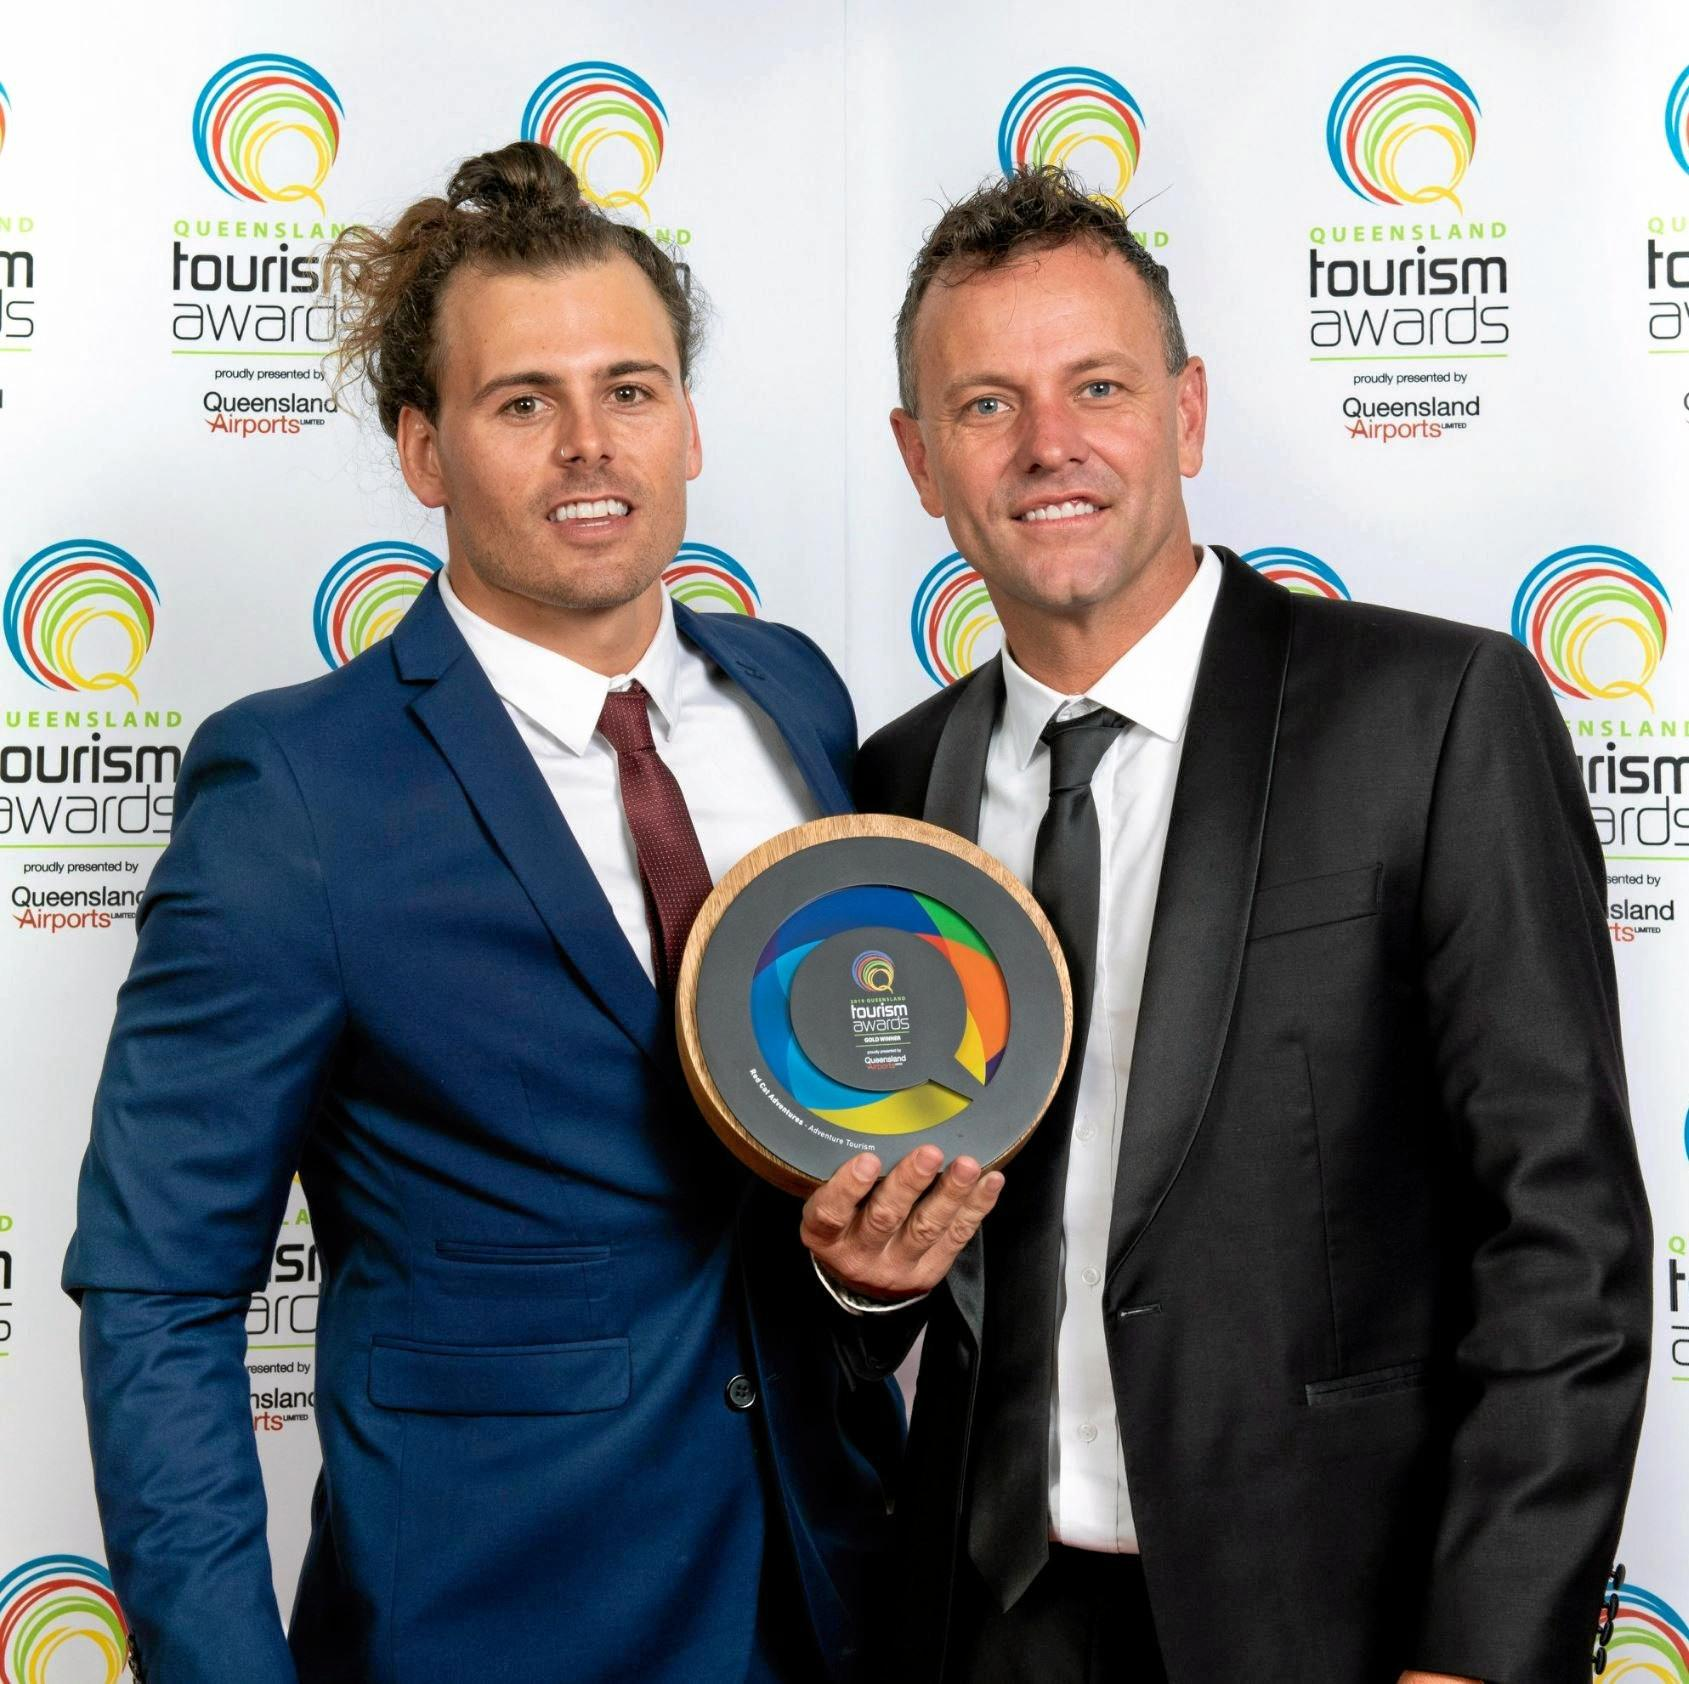 Red Cat Adventures sales and marketing manager Chris Leverington and company director Asher Telford at the 2019 Queensland Tourism Awards.